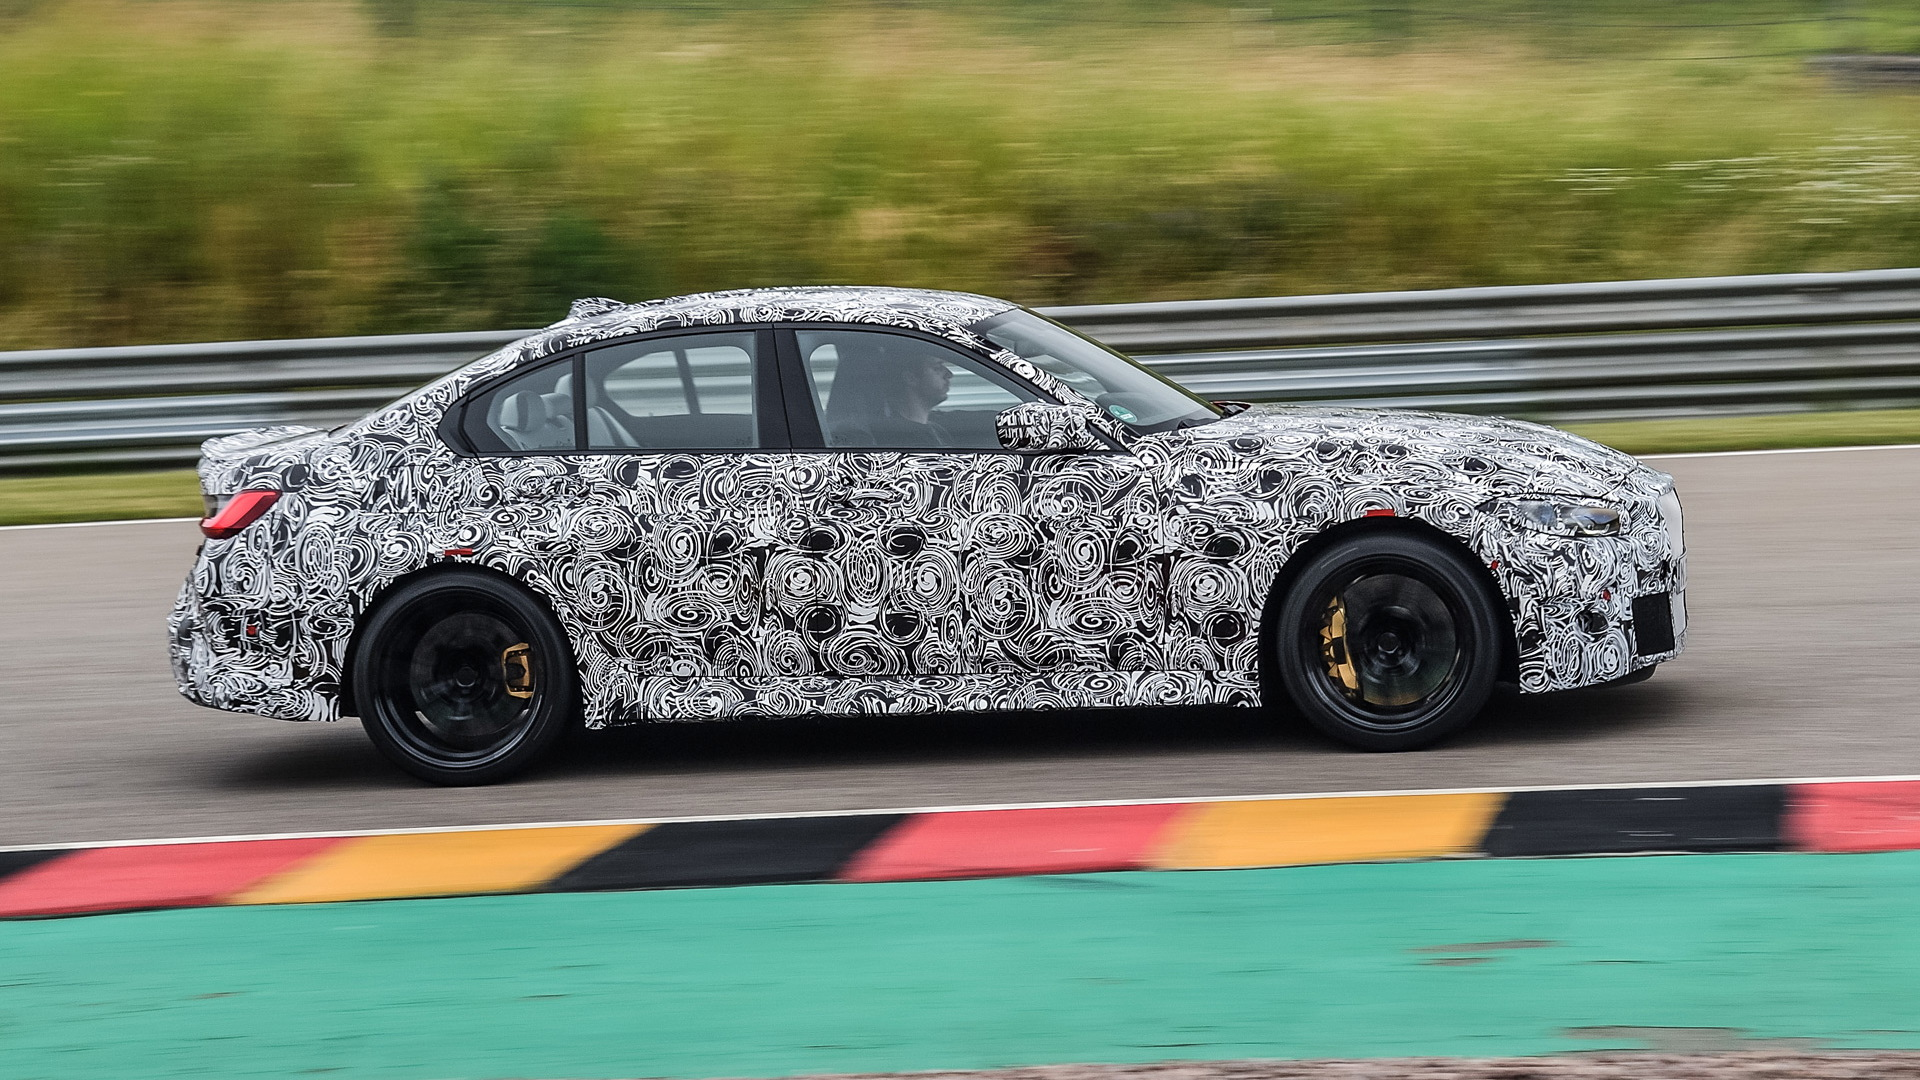 Teaser for BMW M3 debuting in September 2020